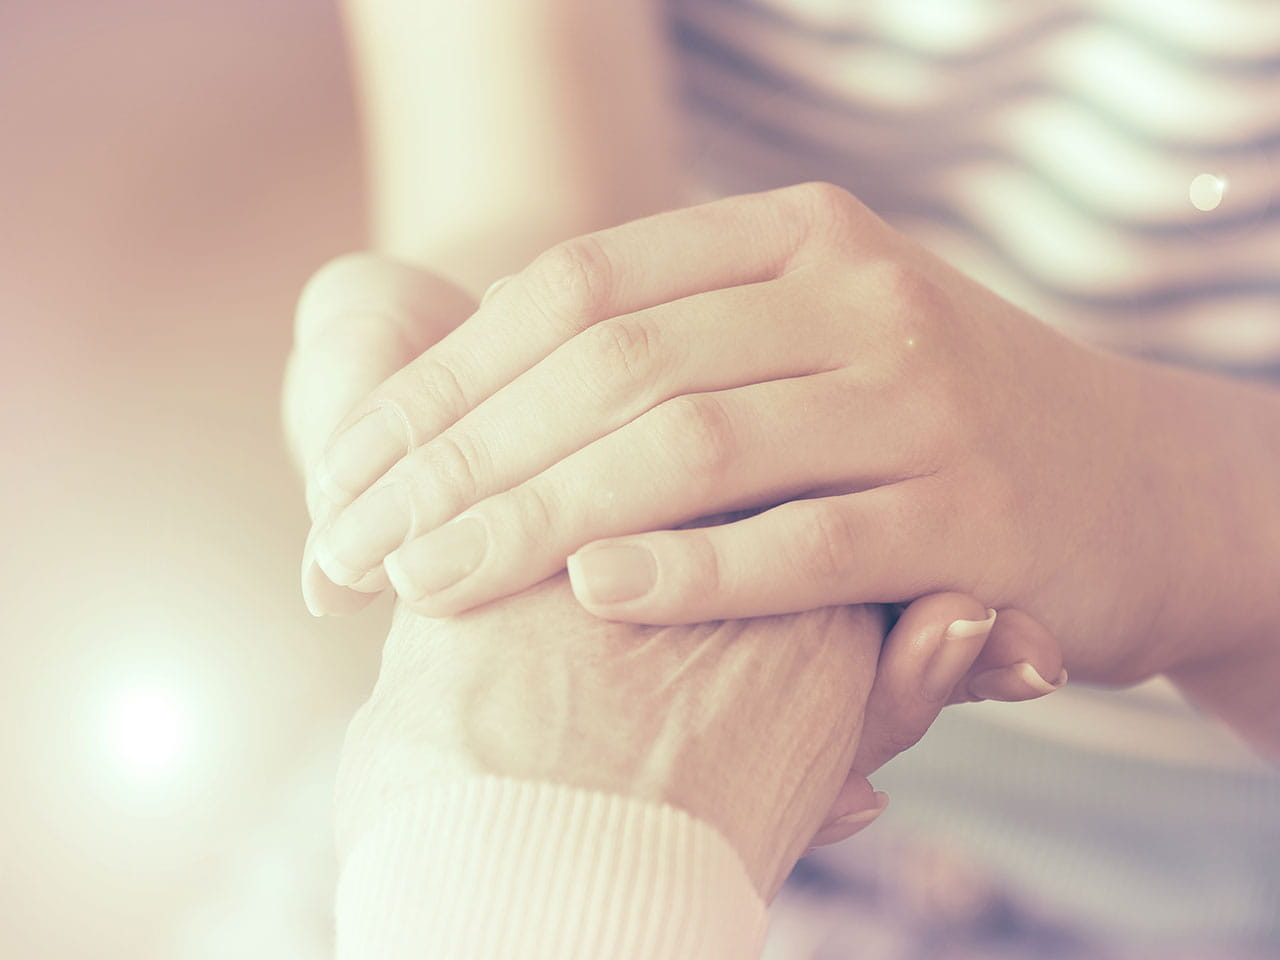 Hands holding older hands with care